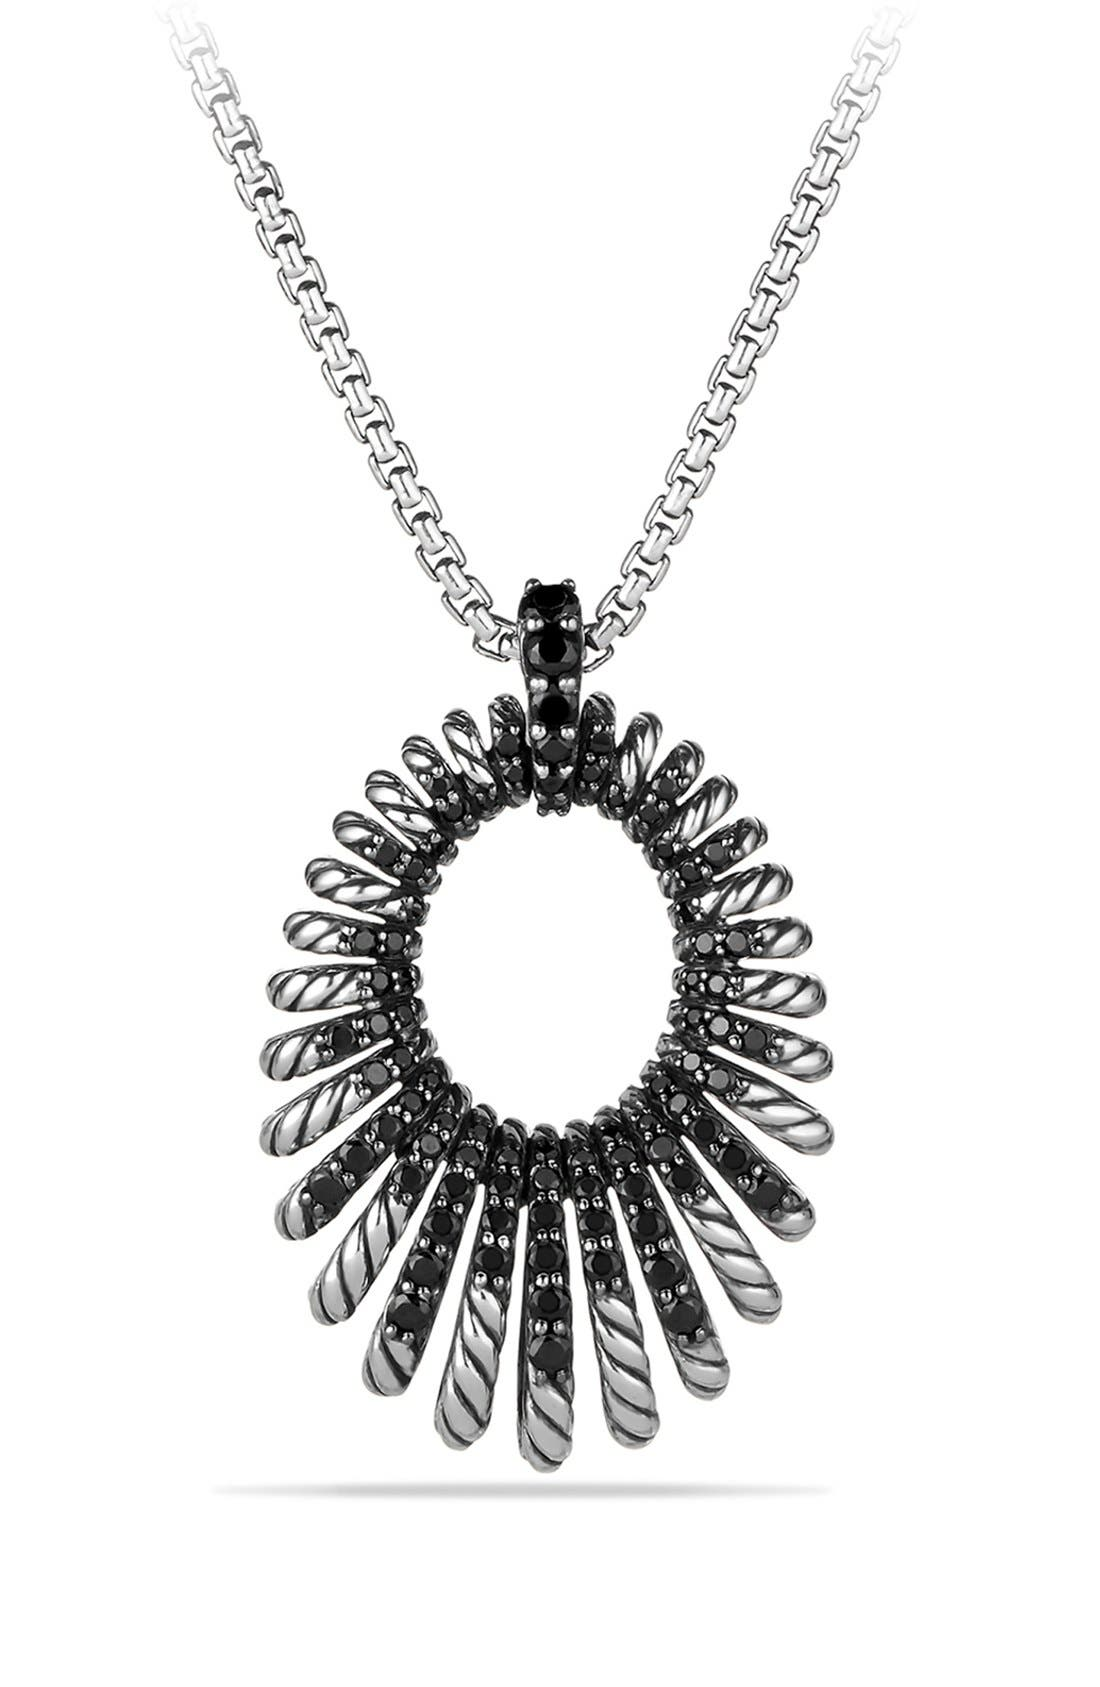 David Yurman 'Tempo' Necklace with Black Spinel